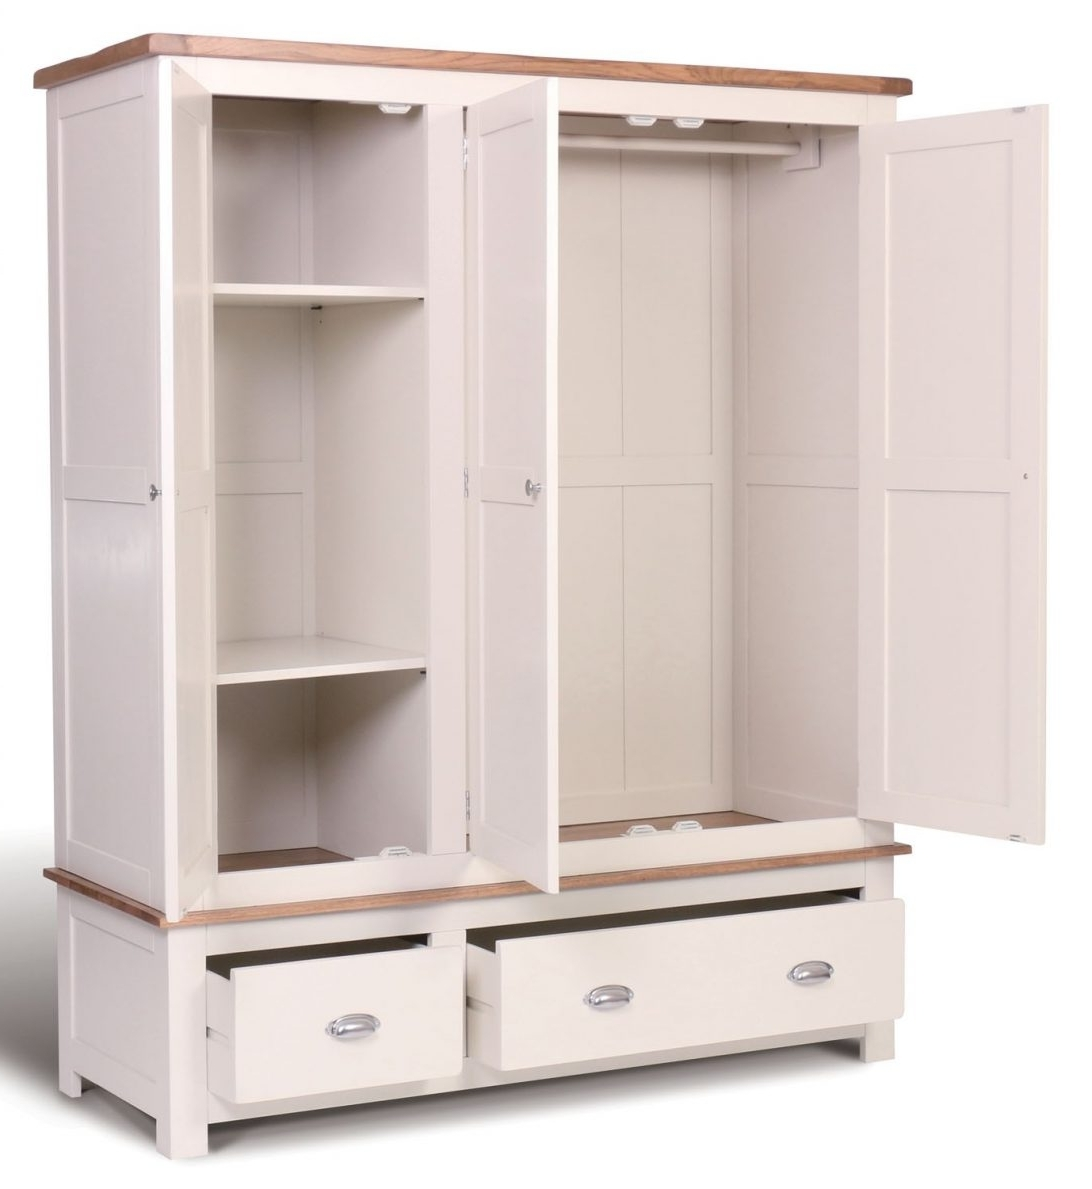 Best And Newest White Wardrobe With Drawers Uk Children's Wooden 2 Door And With Regard To 2 Door Wardrobes With Drawers And Shelves (View 7 of 15)